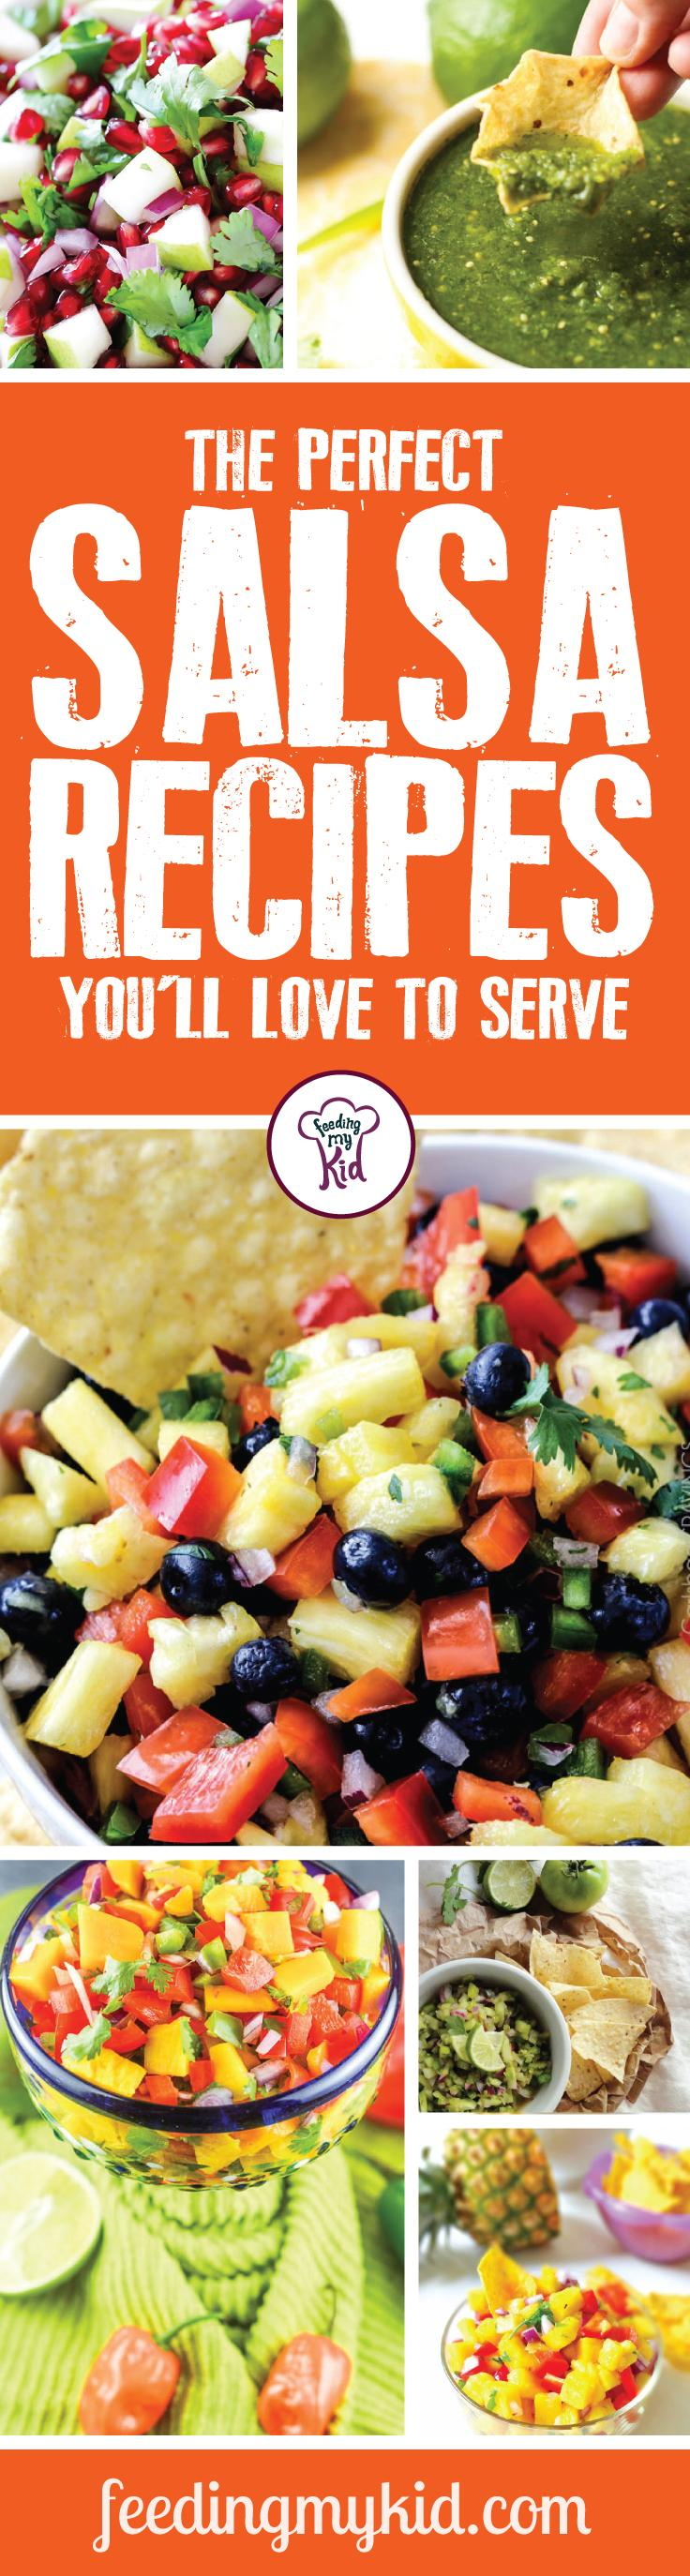 The Perfect Salsa Recipes You'll Love to Serve - Sometimes it's nice to showcase the perfect party dish to show just how good of a cook you are. That's why we put together this list of the perfect salsa recipes you'll love to serve! From rainbow salsa to a roasted cherry tomato salsa; this is a must pin! #fmk #salsa #recipes